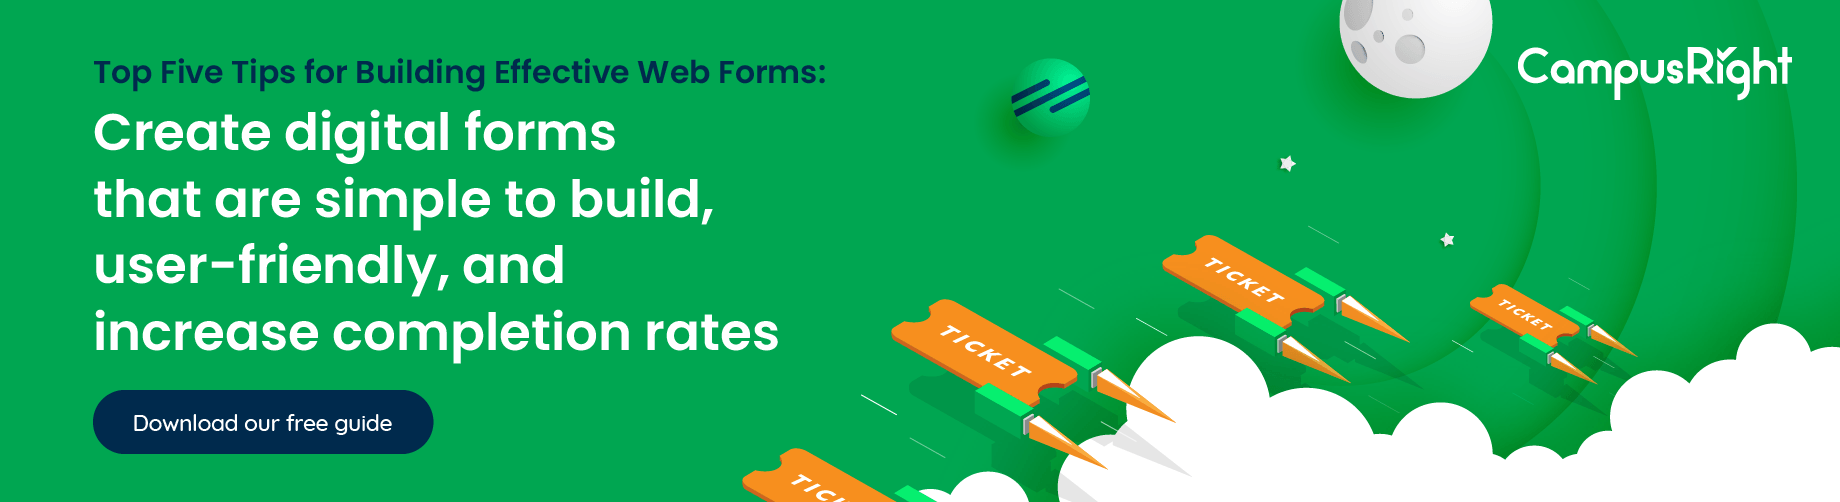 Campus_Right_Top_5_Tips_Effective_Web_Forms